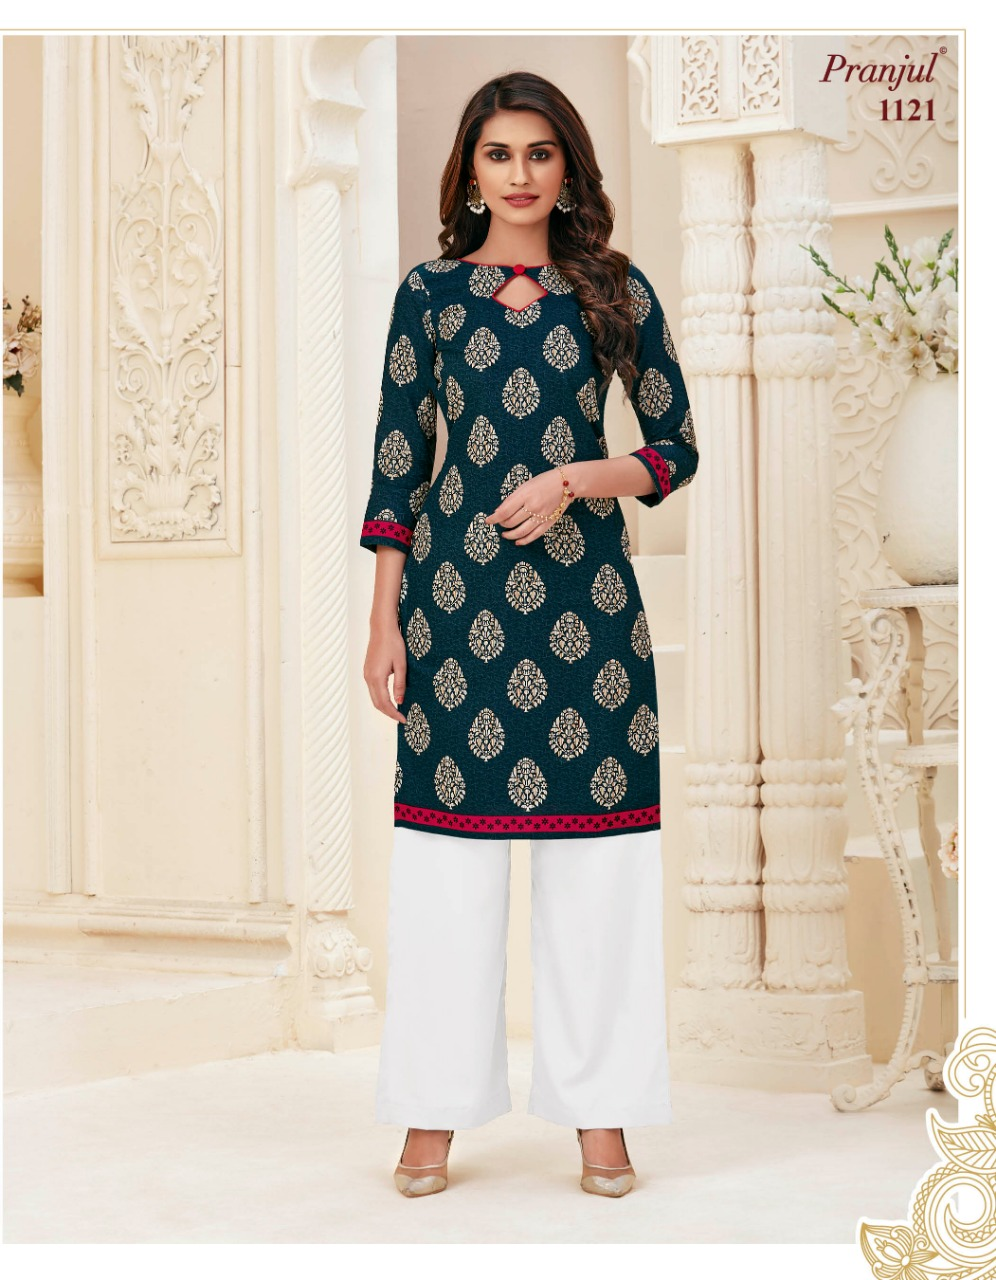 Pranjul Pari Vol 1 Kurti Wholesale Catalog 20 Pcs 2 - Pranjul Pari Vol 1 Kurti Wholesale Catalog 20 Pcs